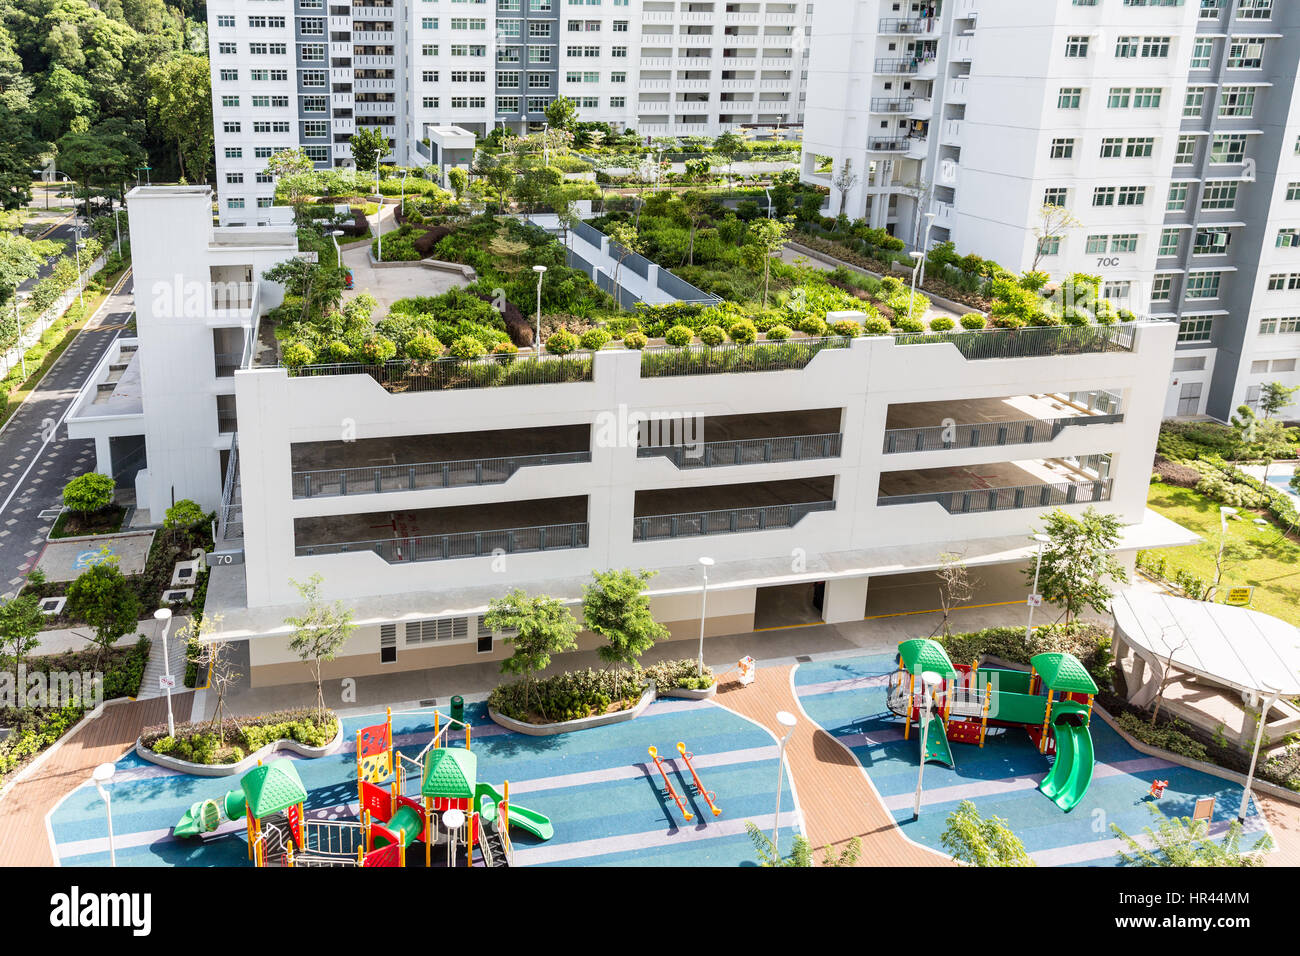 Rooftop gardens feature in new public HDP apartments in Singapore ...